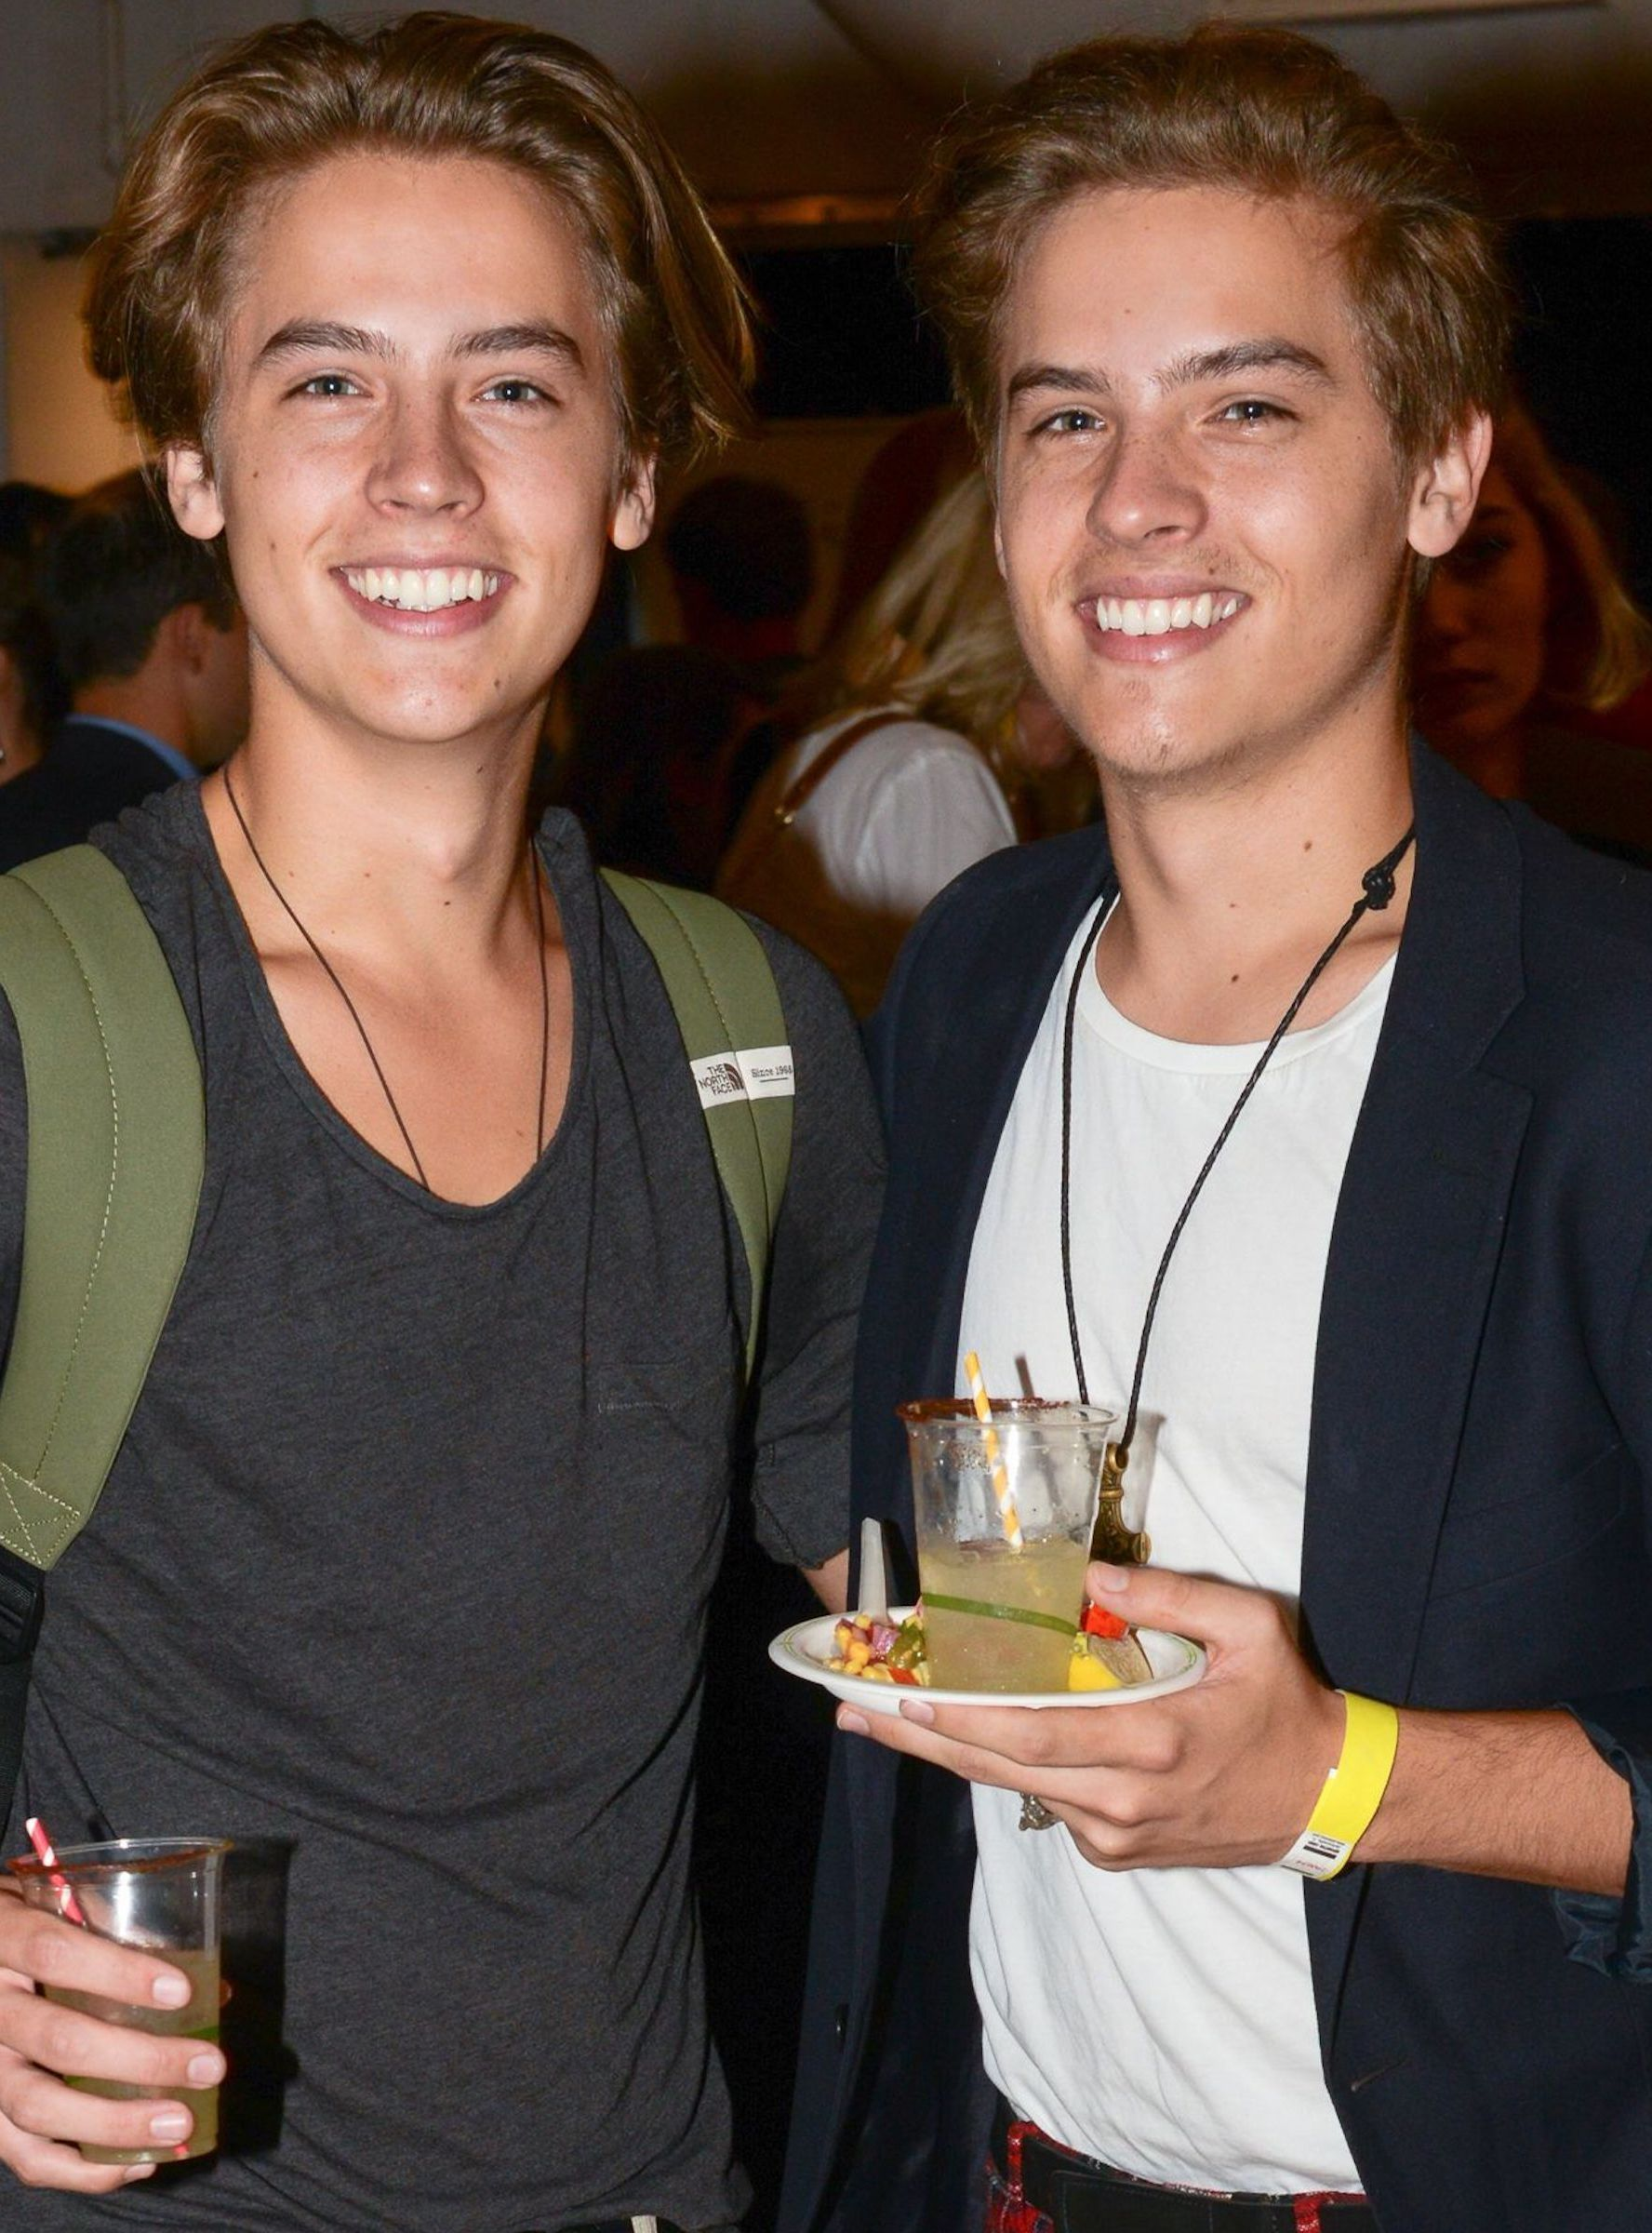 Cole Dylan Sprouse Are Our Favorite Twitter Trolls